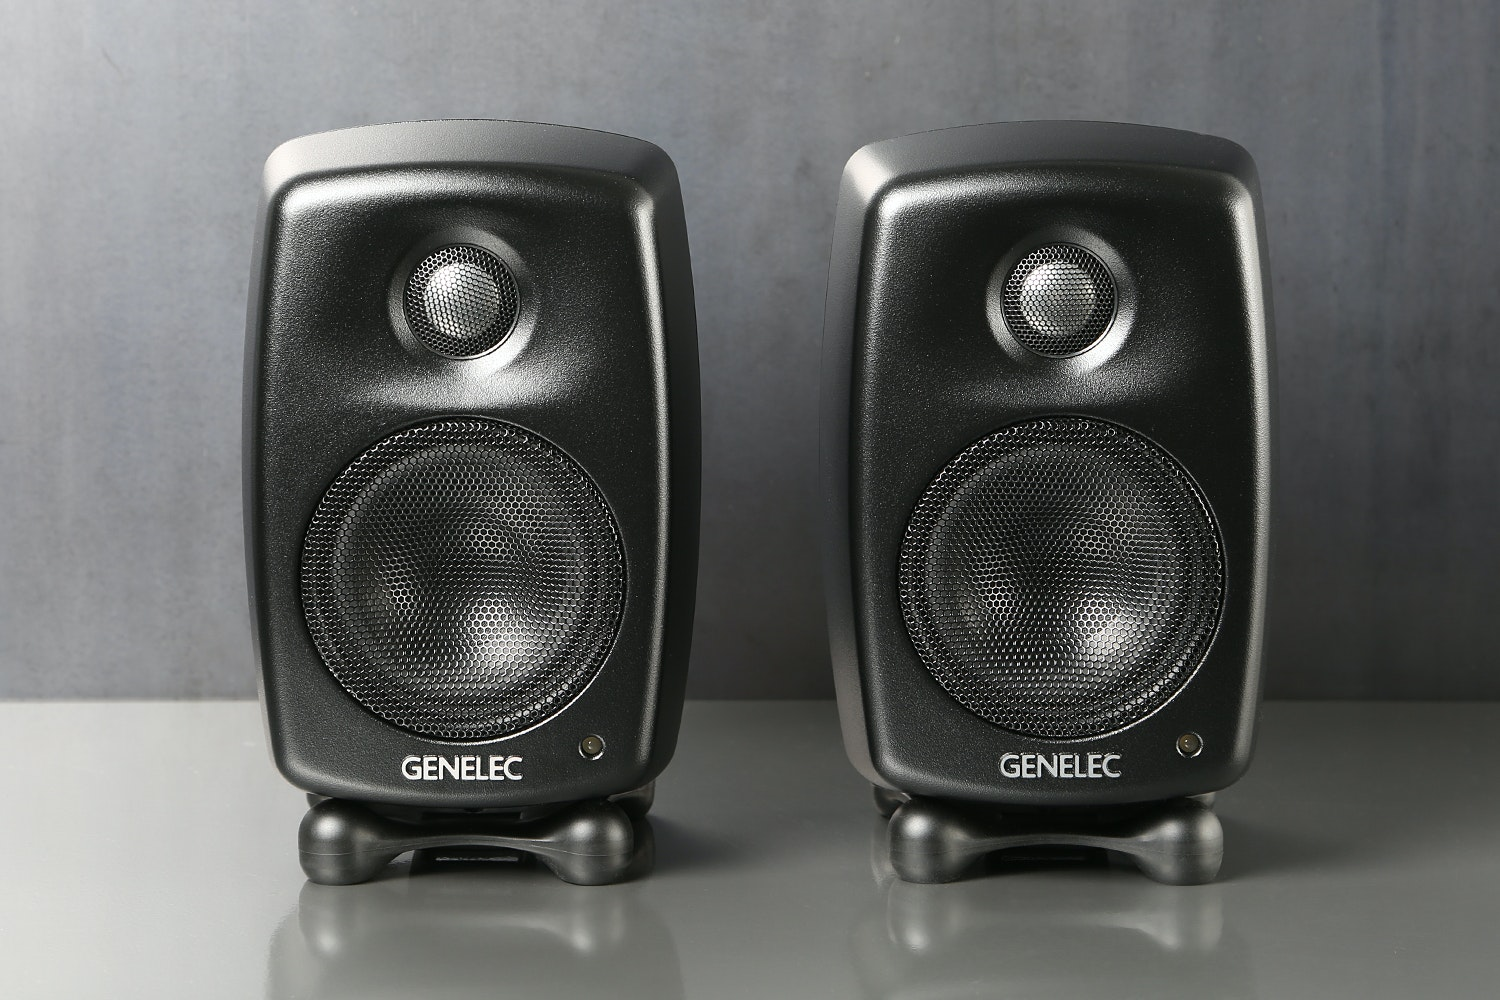 Genelec G One Speakers